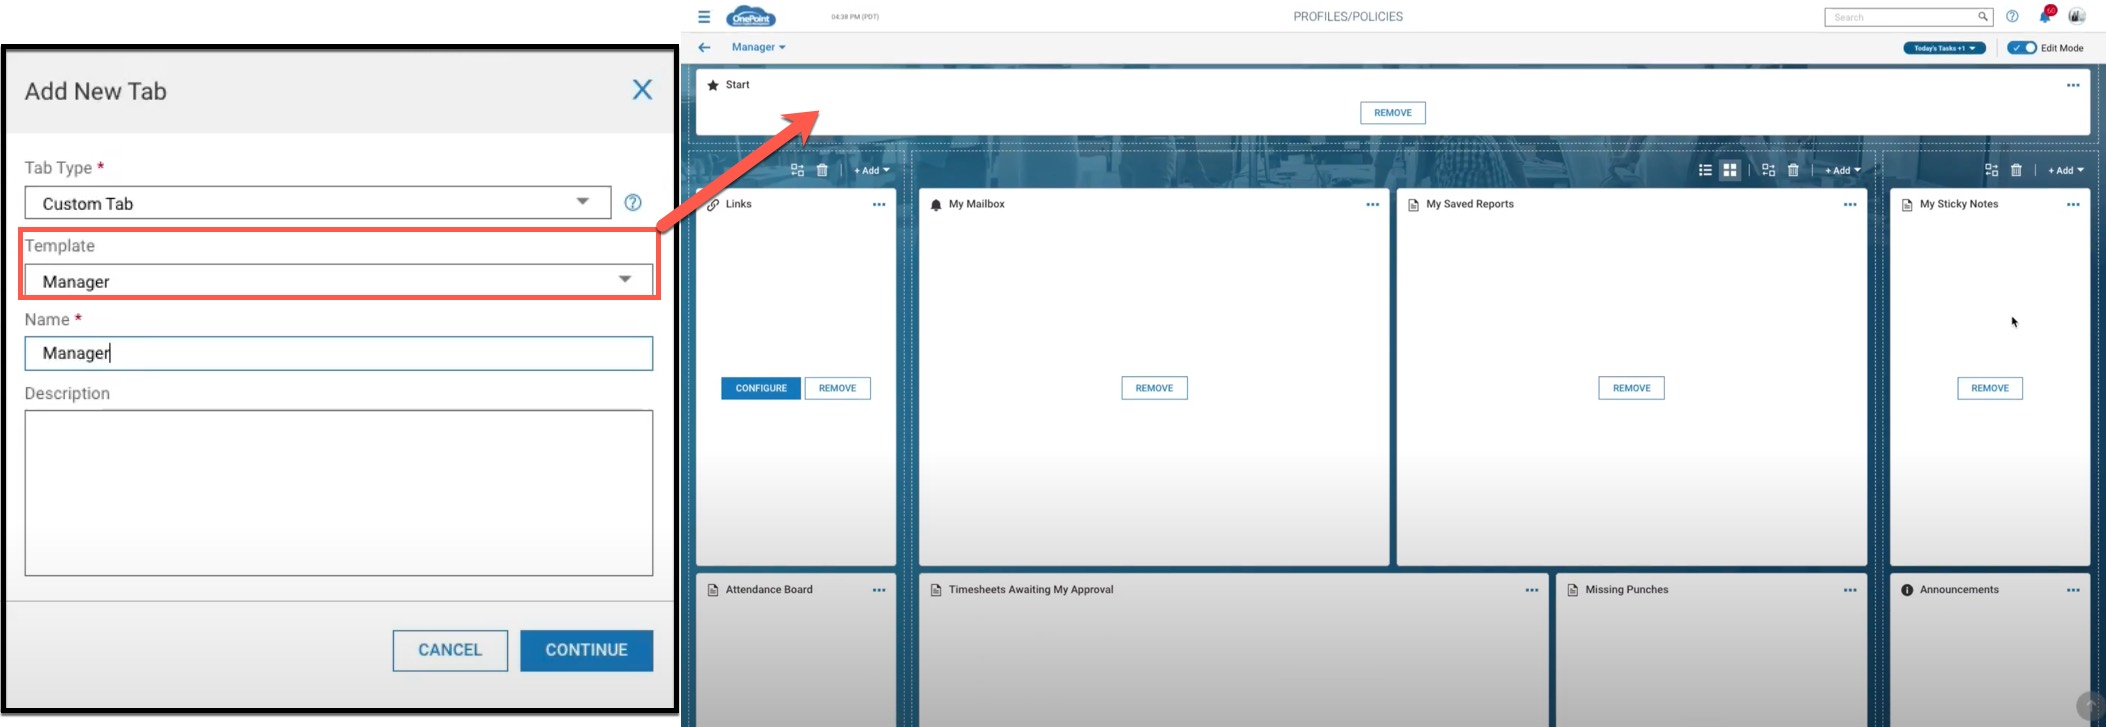 Pre-configured Managers Dashboard Layout search screen